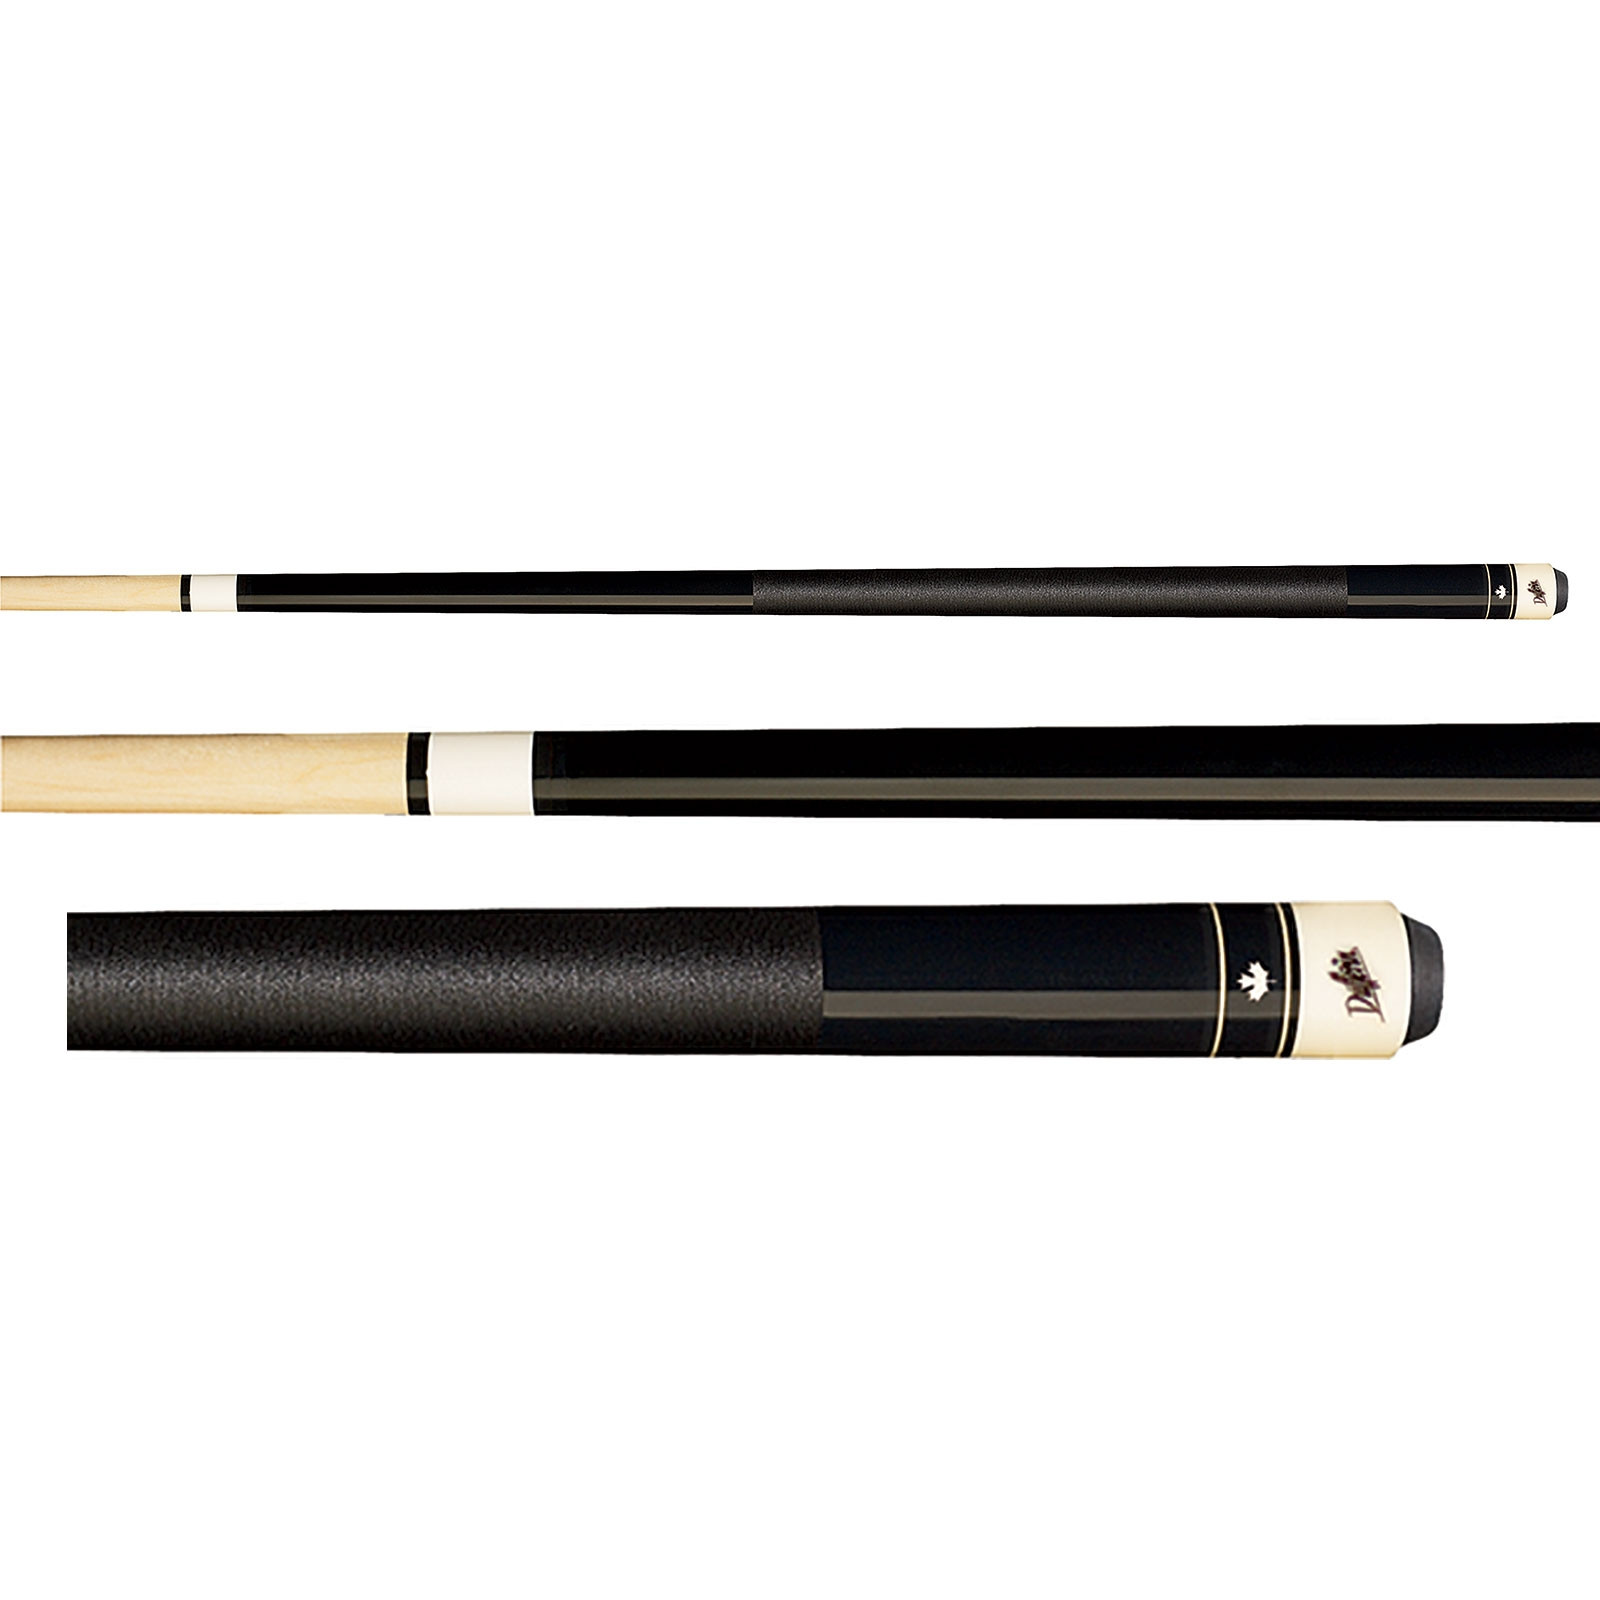 Dufferin D-239 Jet Black Pool Cue Stick